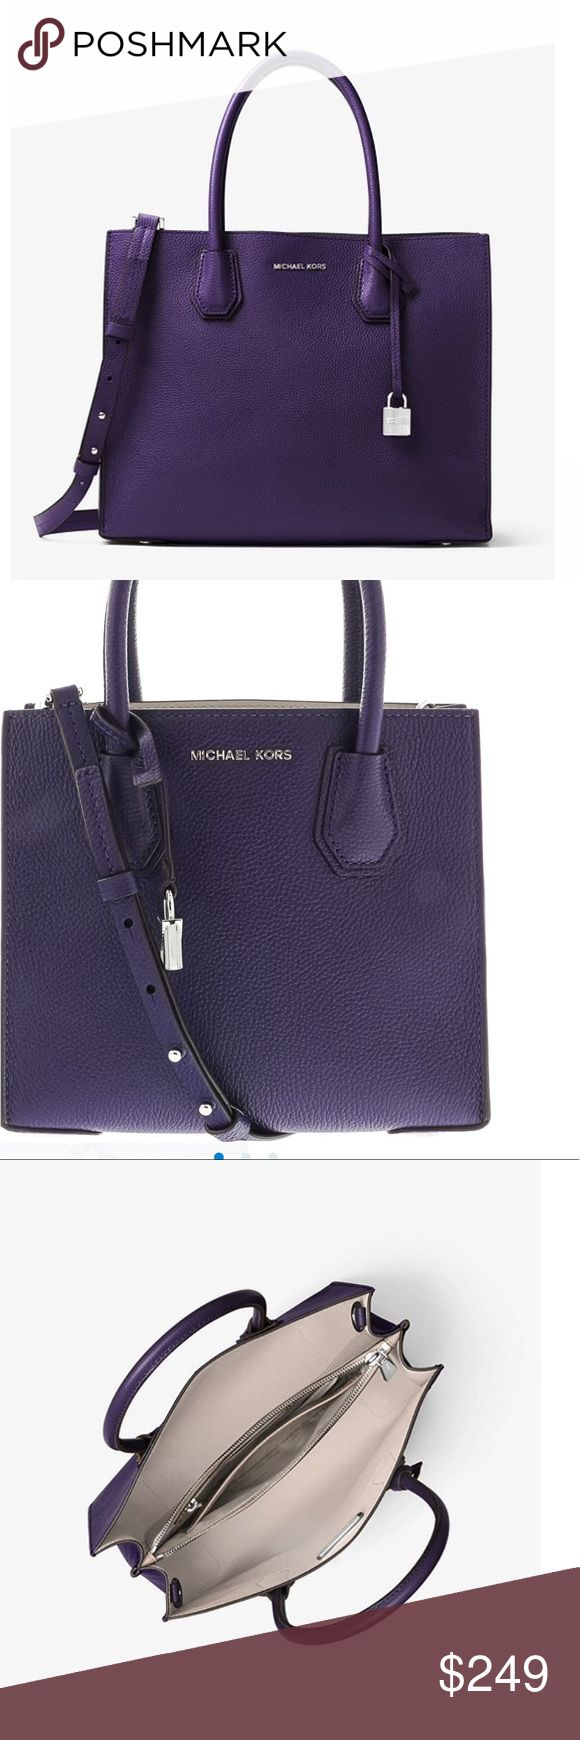 "MICHAEL KORS Mercer Convertible Leather Tote This is a beautiful Purple Pebbled Leather bag. Tuck important items such as your keys, phone and wallet in the median zippered compartment, and carry it by its elegant top handles or go hands free with the removable shoulder strap.  100% full grain pebbled leather, silver tone hardware, handle drop 6.5"", adjustable strap 22""-25"", interior has center zip compartment with slip pocket, 100% coated canvas, with signature monogrammed lining. 12.5""L x…"